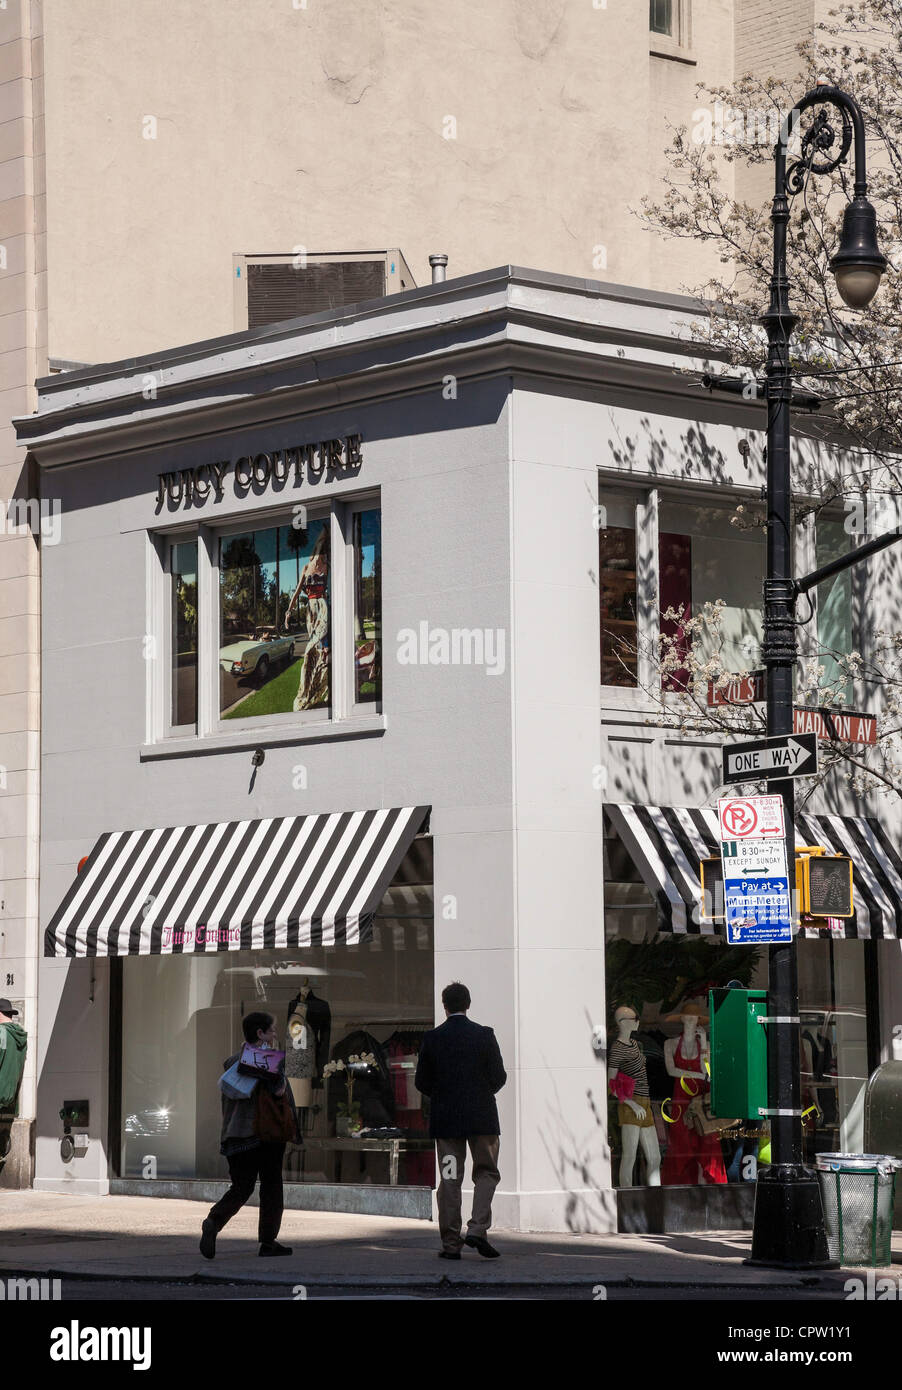 Juicy Couture Store Madison Avenue, NYC - Stock Image